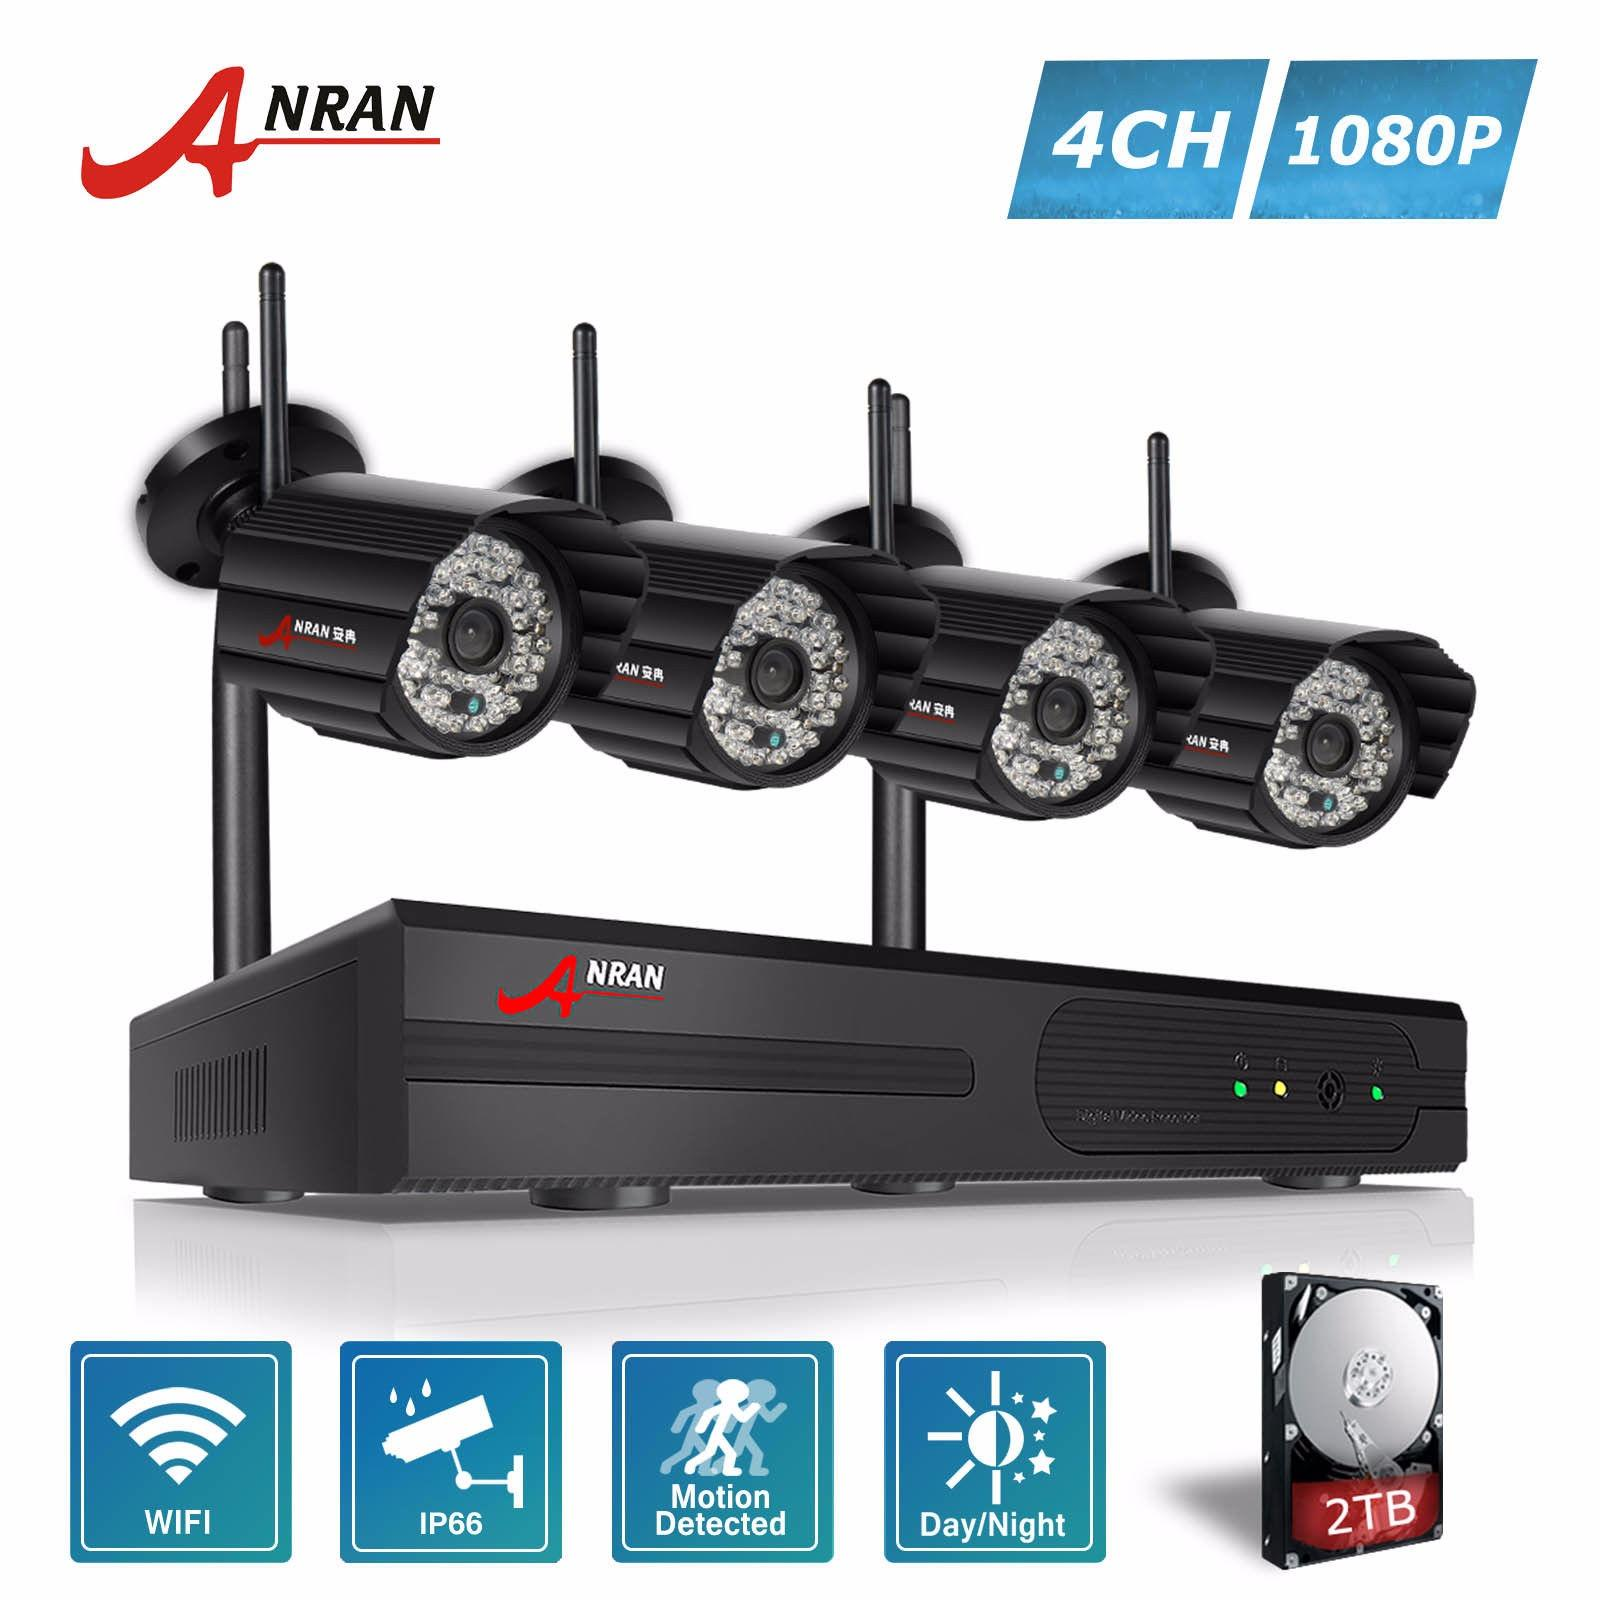 Anran 4Ch 1080P Wifi Nvr Wireless Security Camera System With 4 Outdoor 1080P Night Vision Ip Security Cctv Cameras Reviews